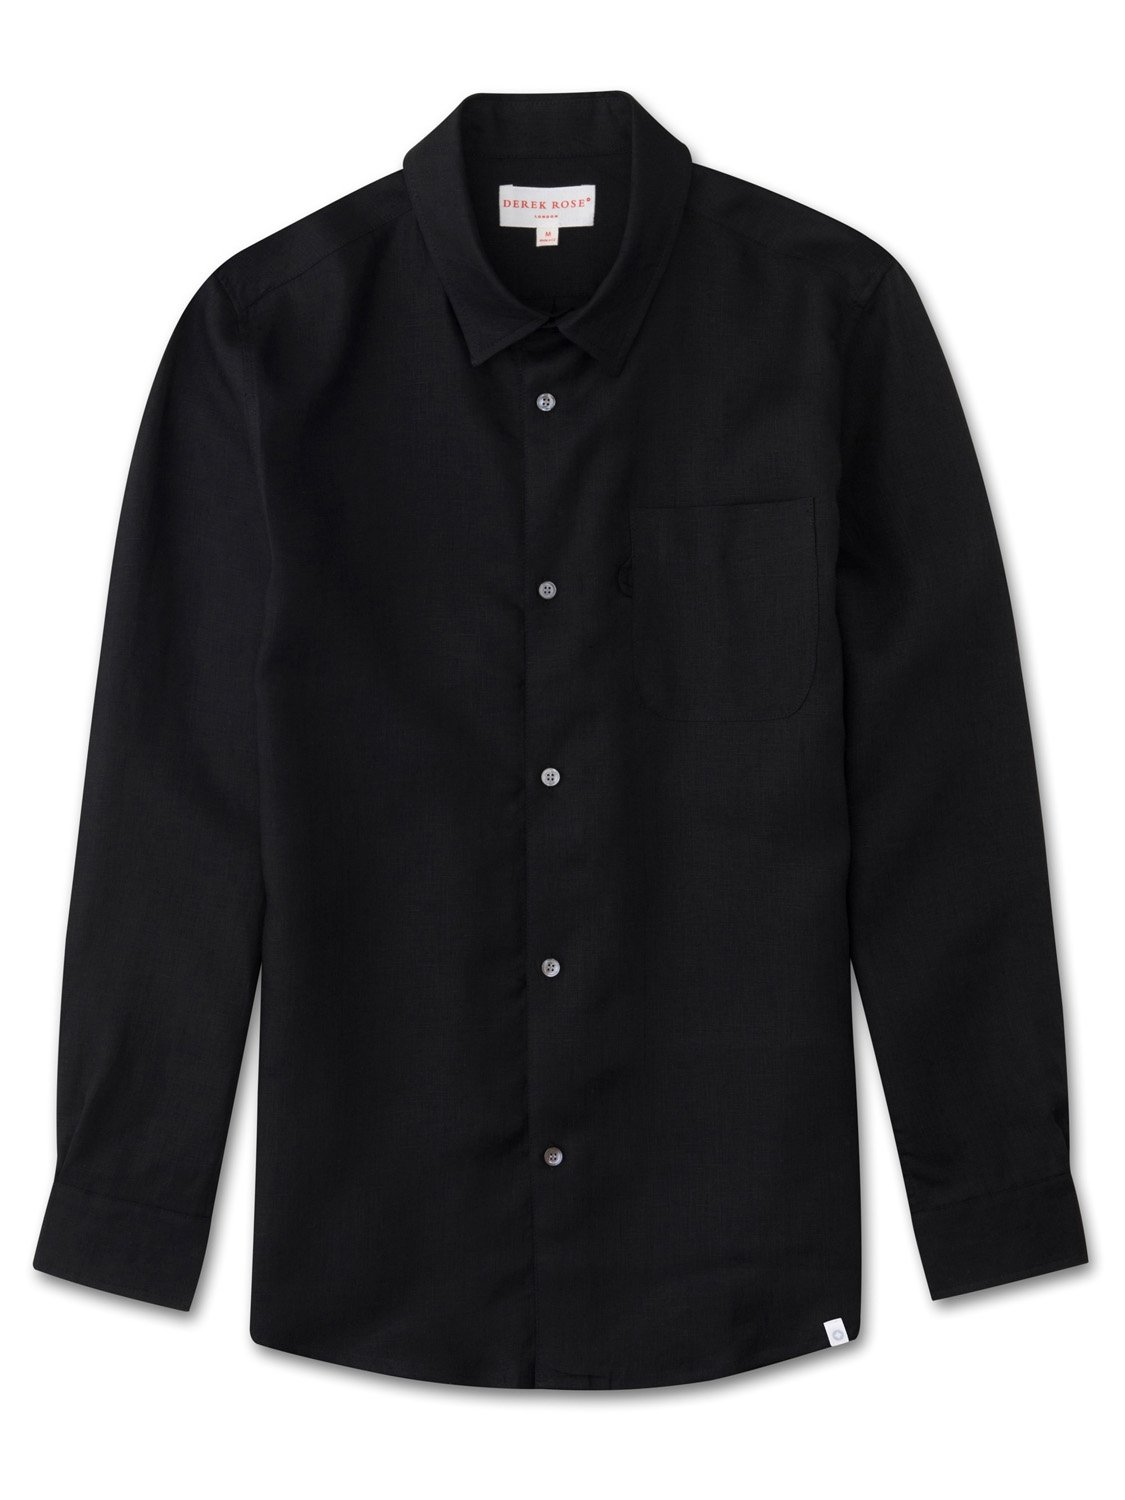 Men's Linen Shirt Monaco Pure Linen Black